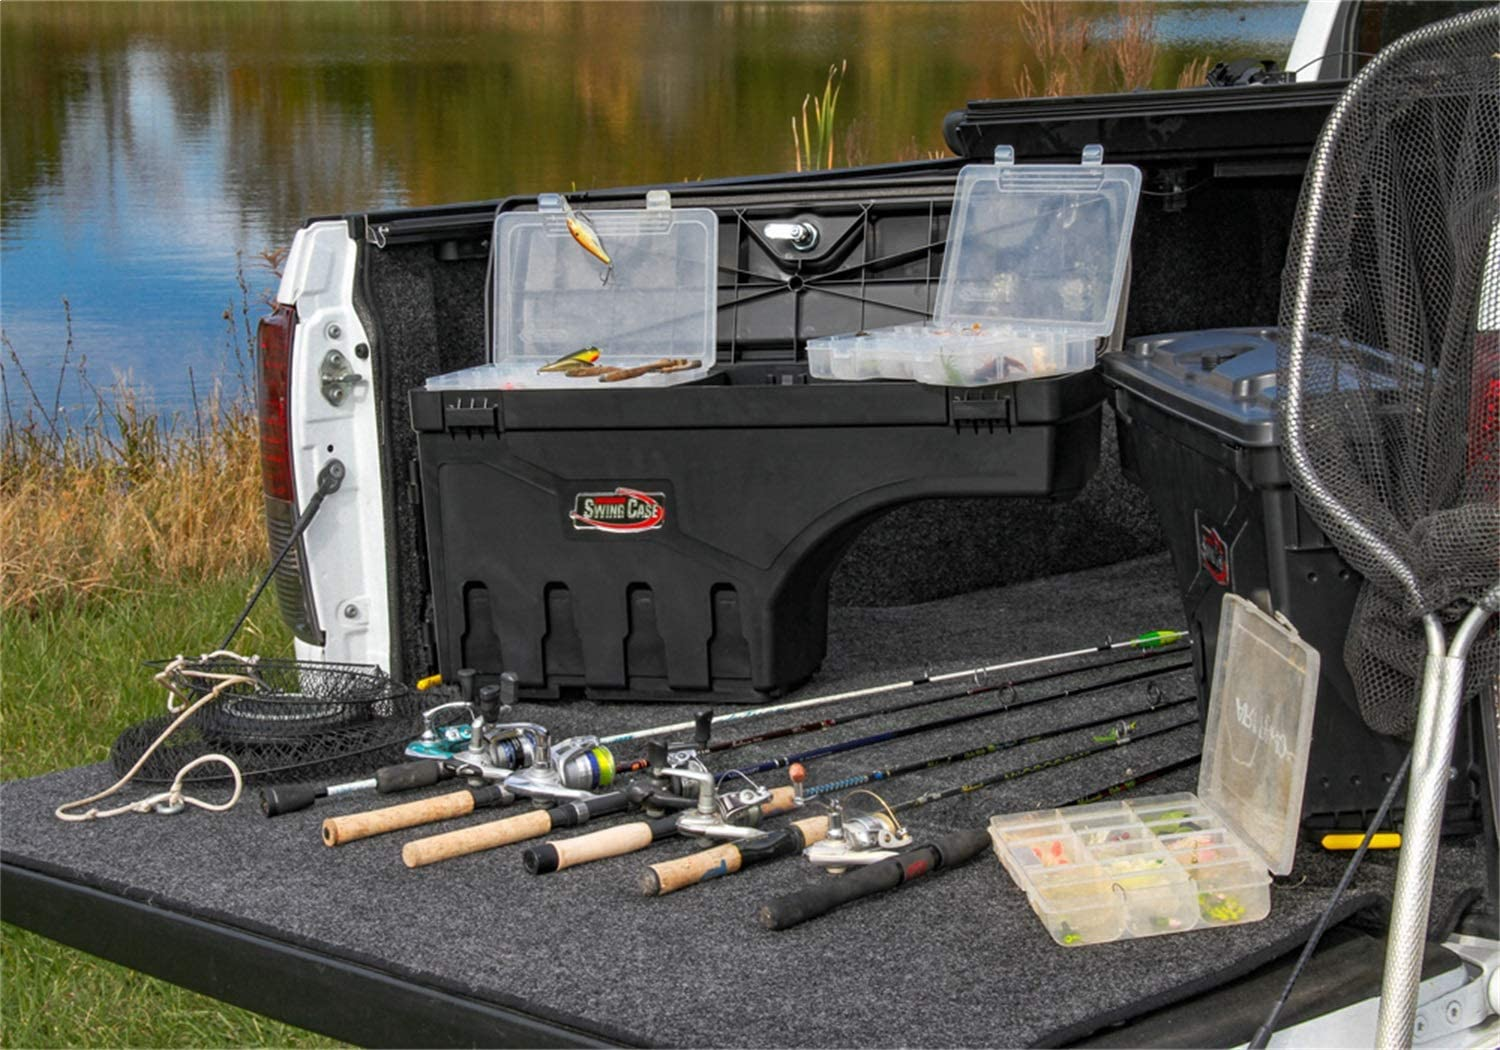 Undercover Swingcase for both driver and Passenger Side Panels of a truck. Helpful companions in recreational fishing.